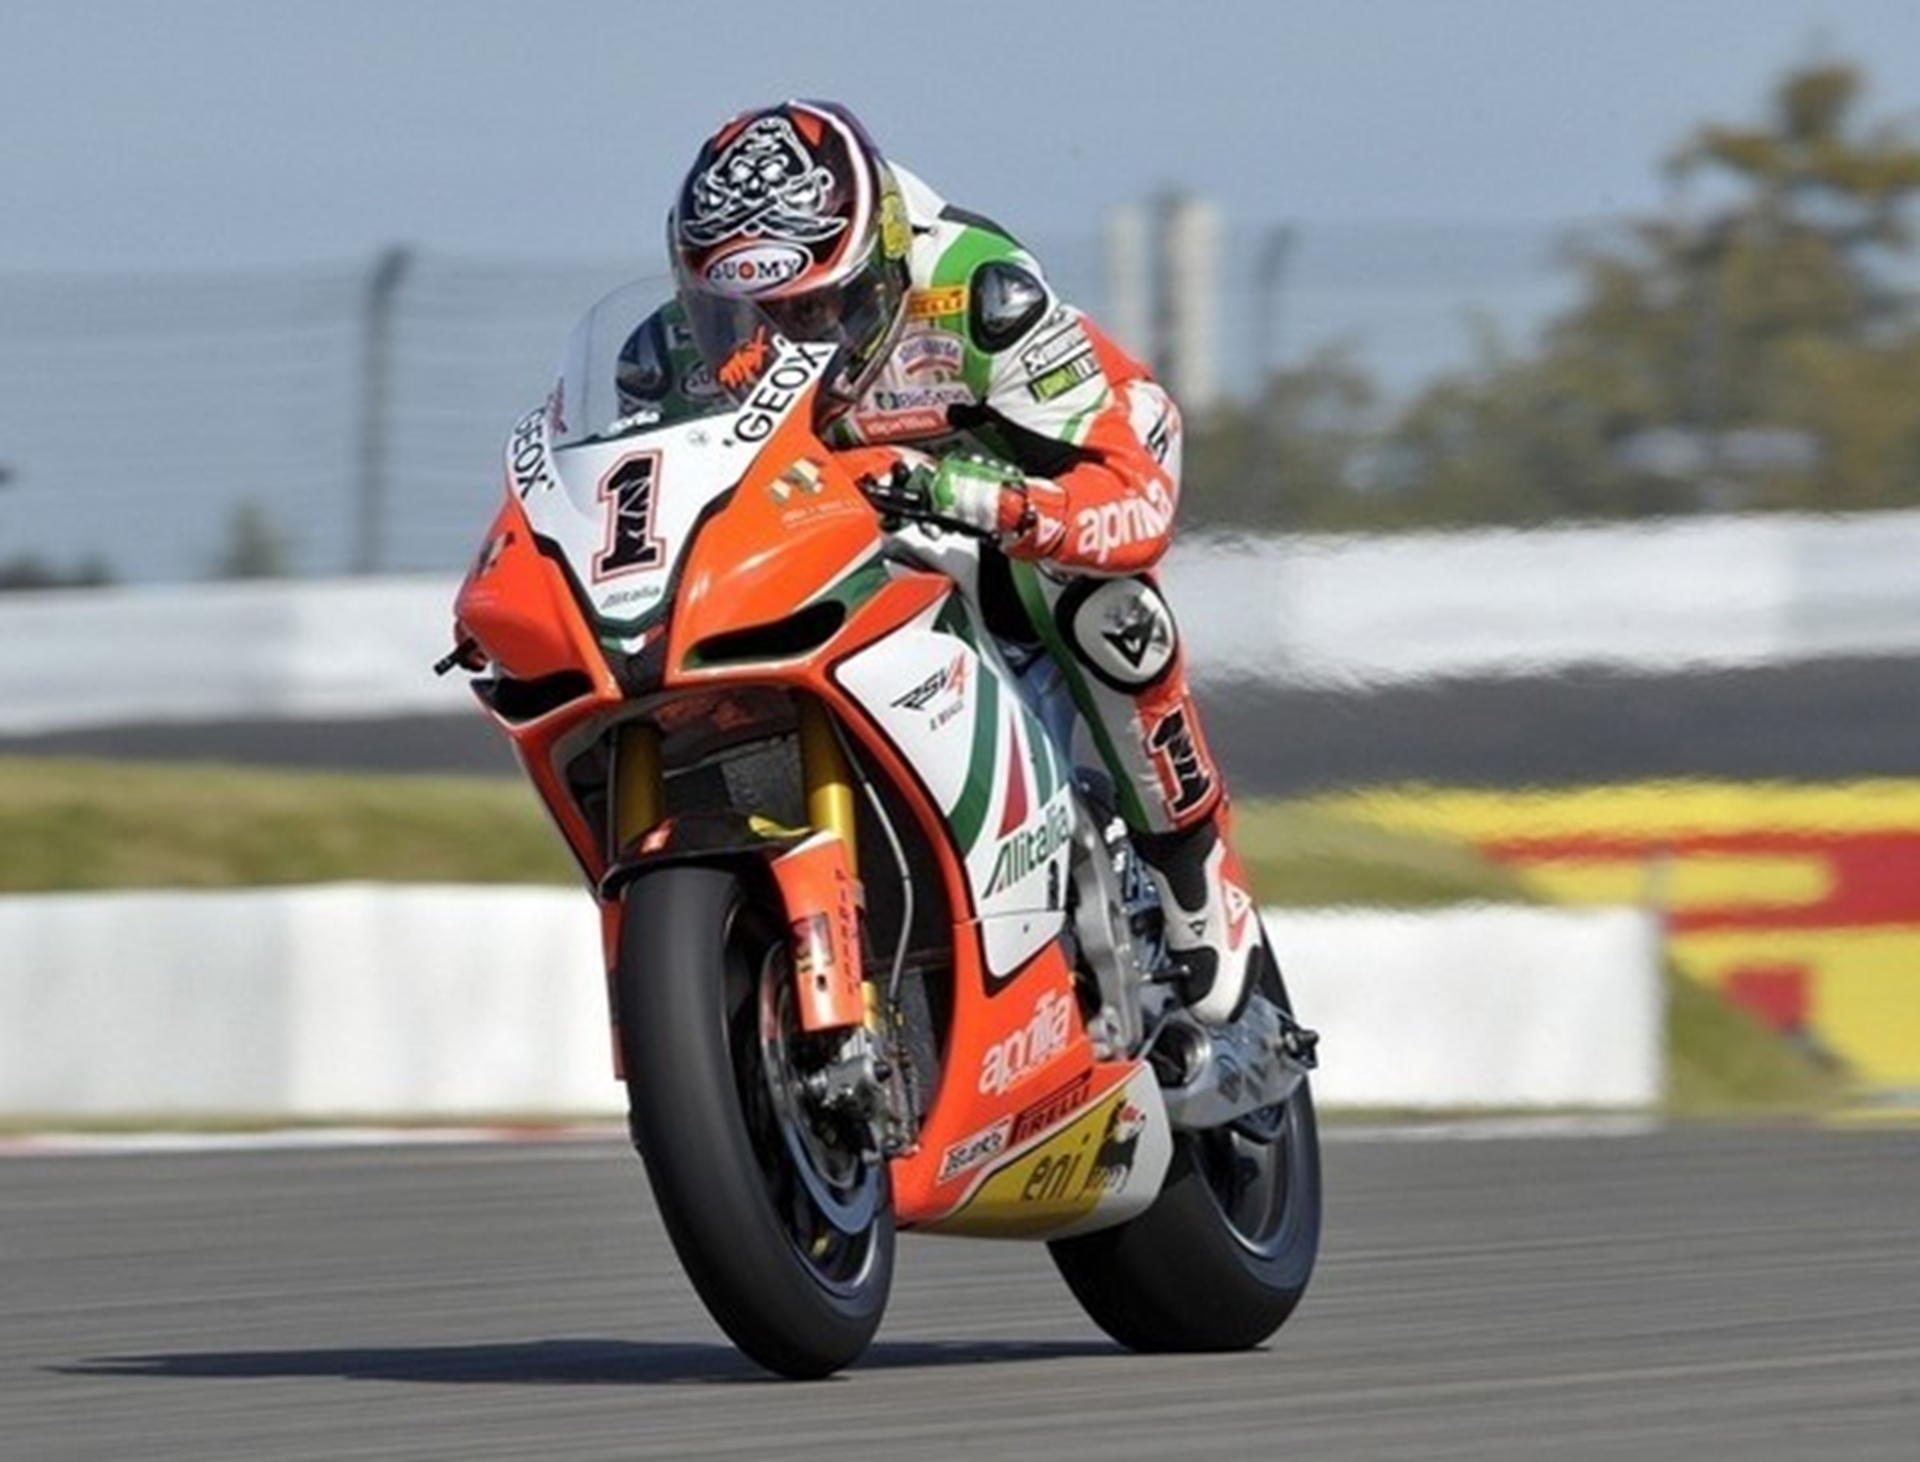 Max Biaggi's Aprilia RSV4 World Superbike